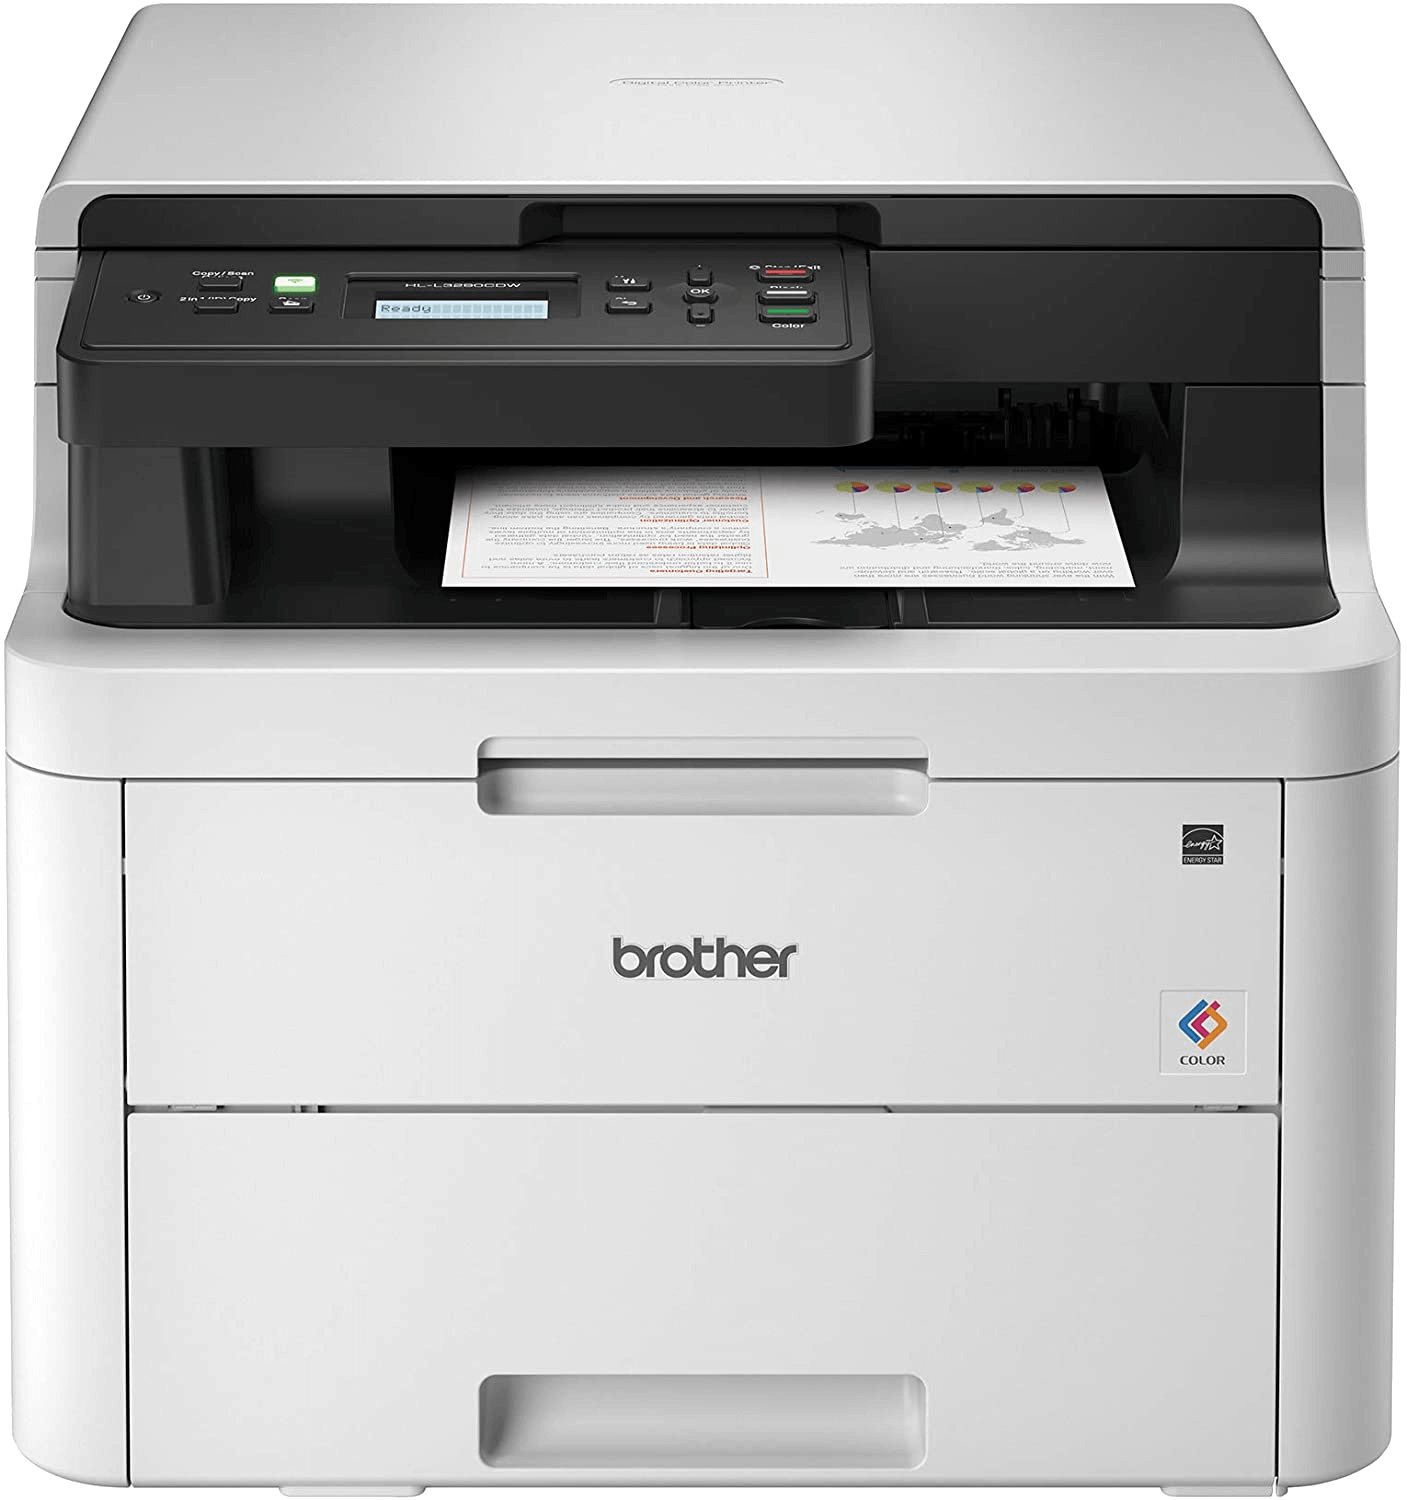 Brother HL-L3290CDW Compact Digital Color Duplex Printer